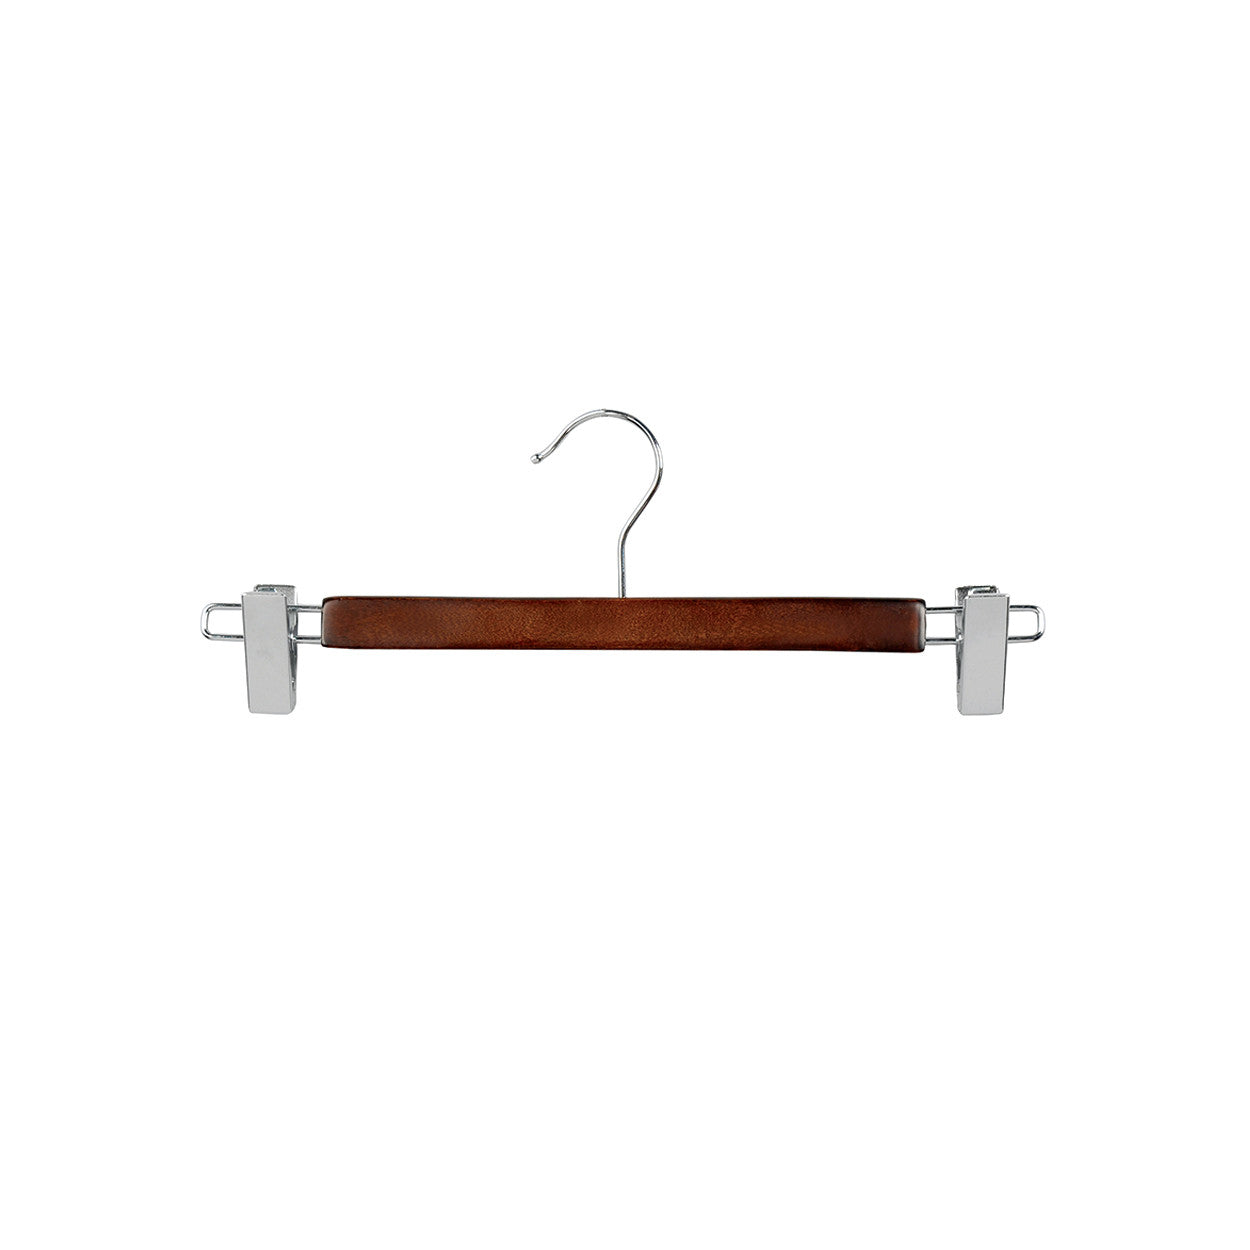 Wenge Wooden hanger with clips at ends 330Wx12mm Thick (Box of 100) H2634WE-100